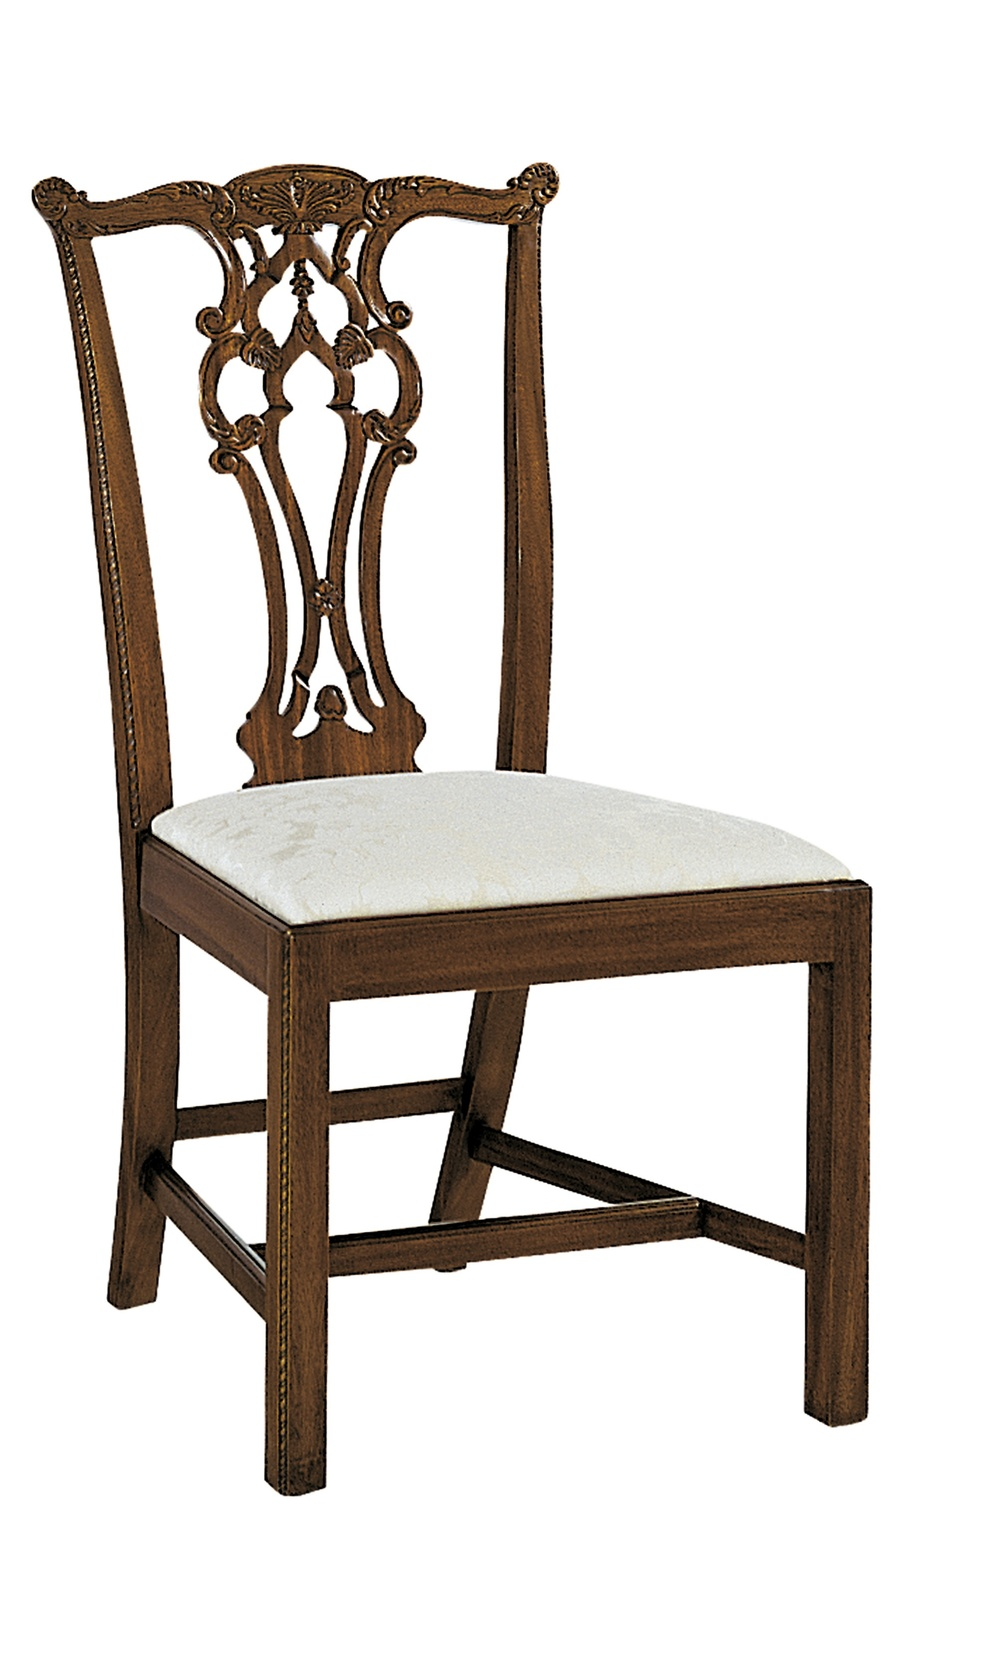 Hickory Chair - Rhode Island Chippendale Side Chair